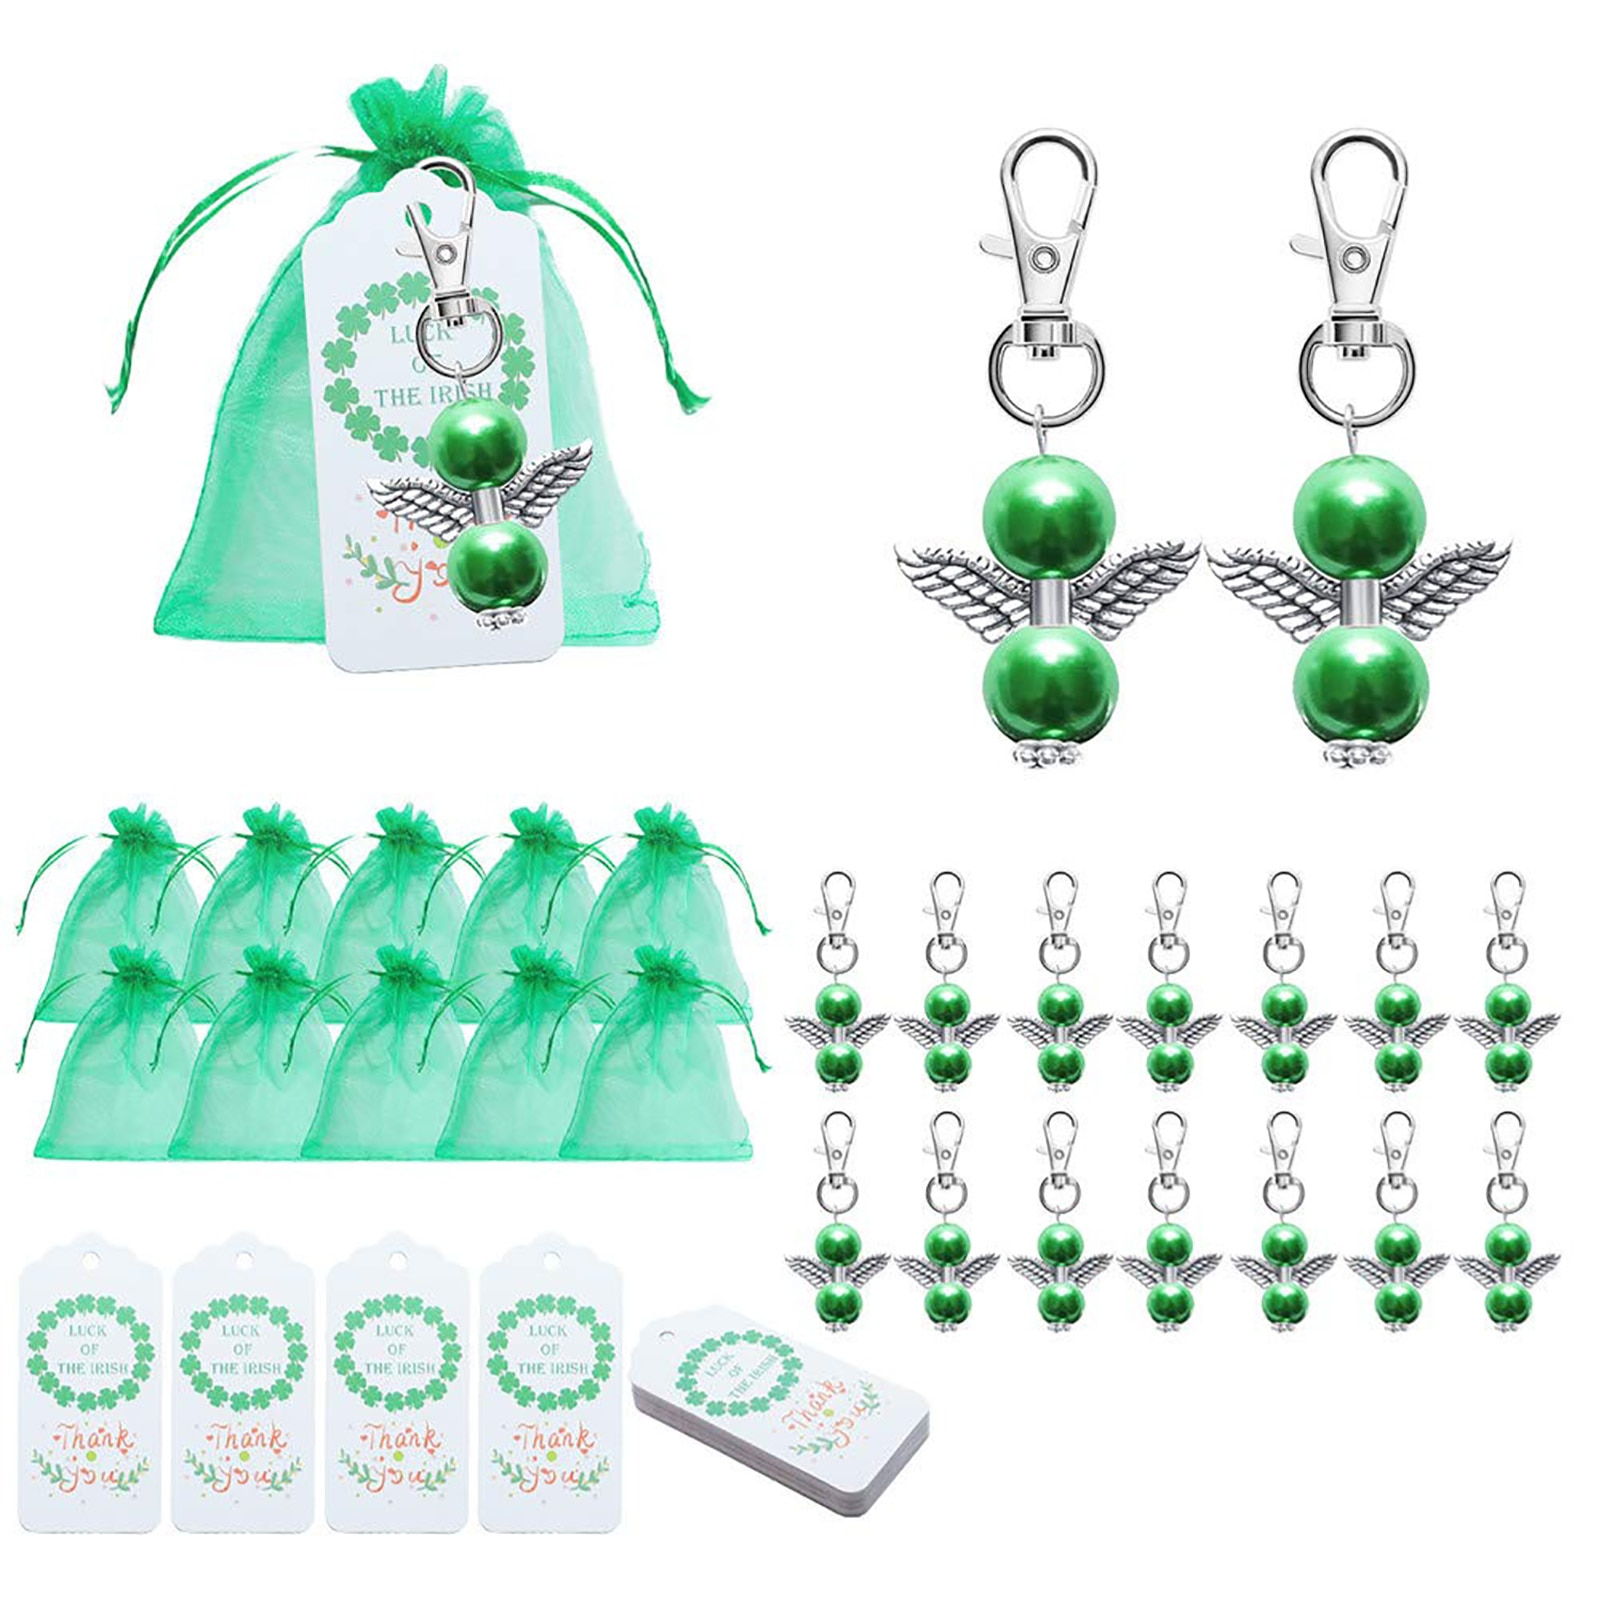 20 Sets St. Patrick's Day Themed Angel Keychains Irish Festival Party Supplies Holiday Masquerade Clover Gift Bags